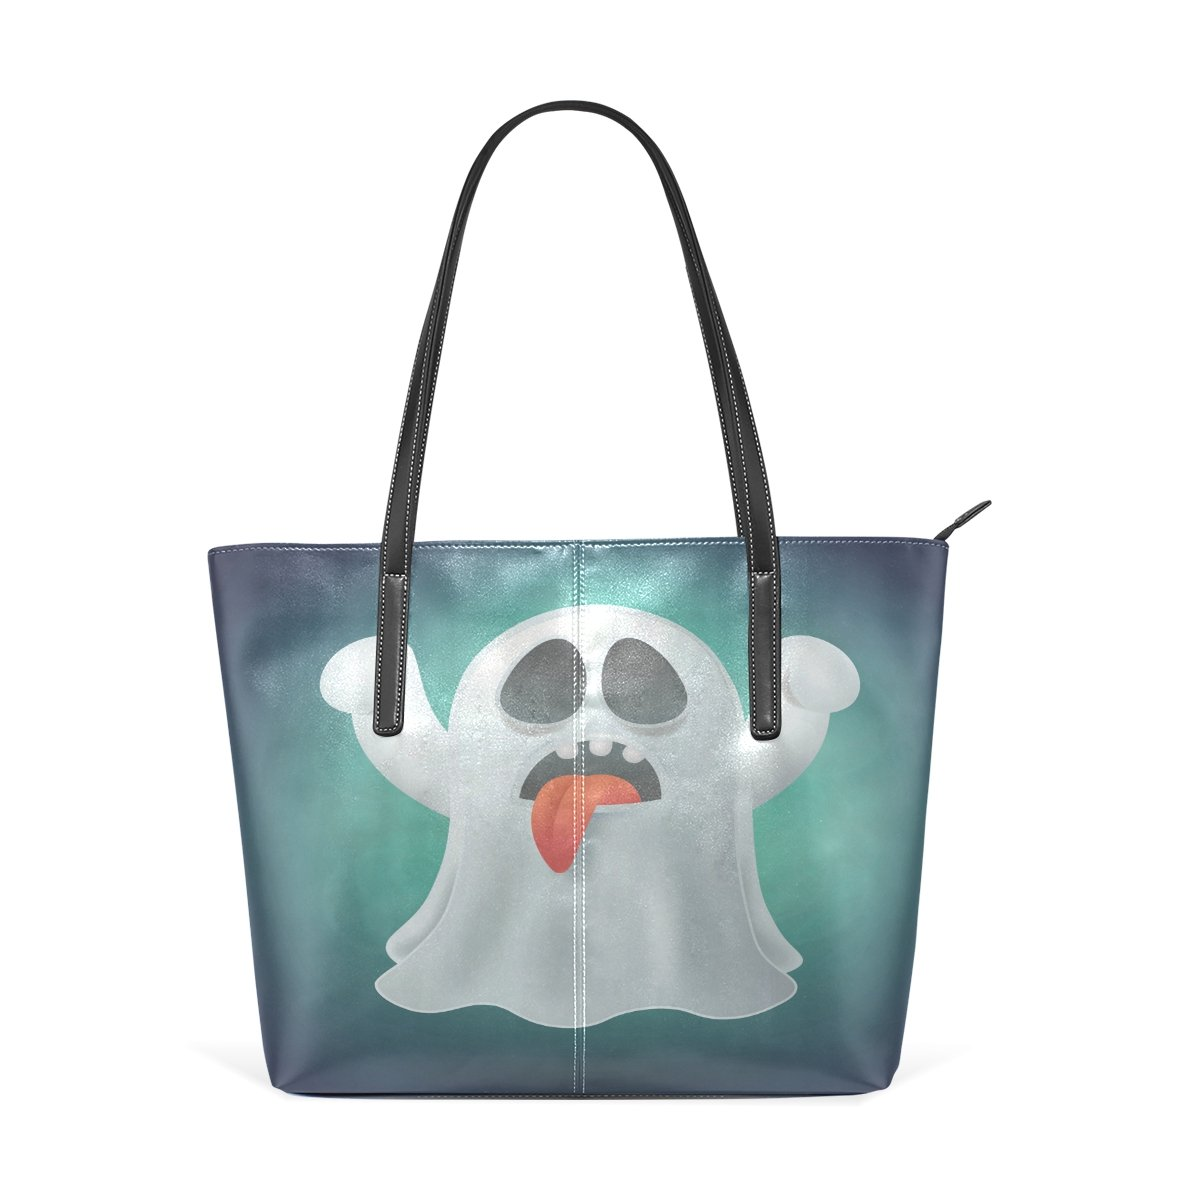 Womens Leather Top Handle Shoulder Handbag Wacky Ghost Large Work Tote Bag